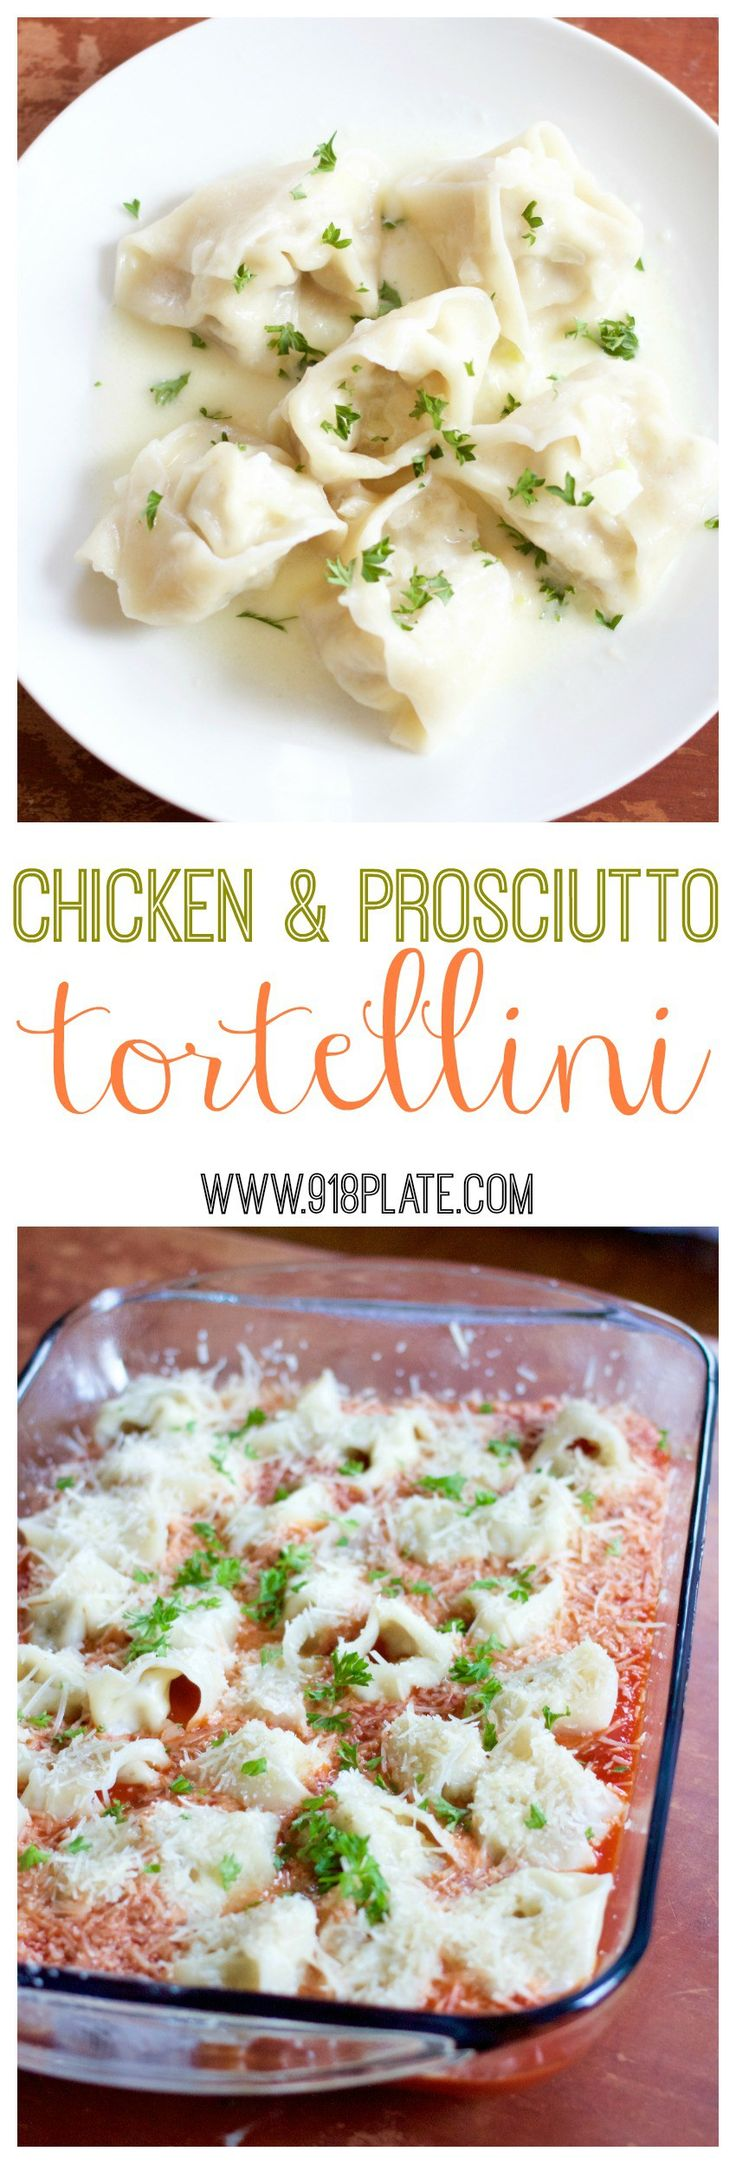 This hand-wrapped chicken and prosciutto tortellini recipe is mild, and goes with white or red sauce!